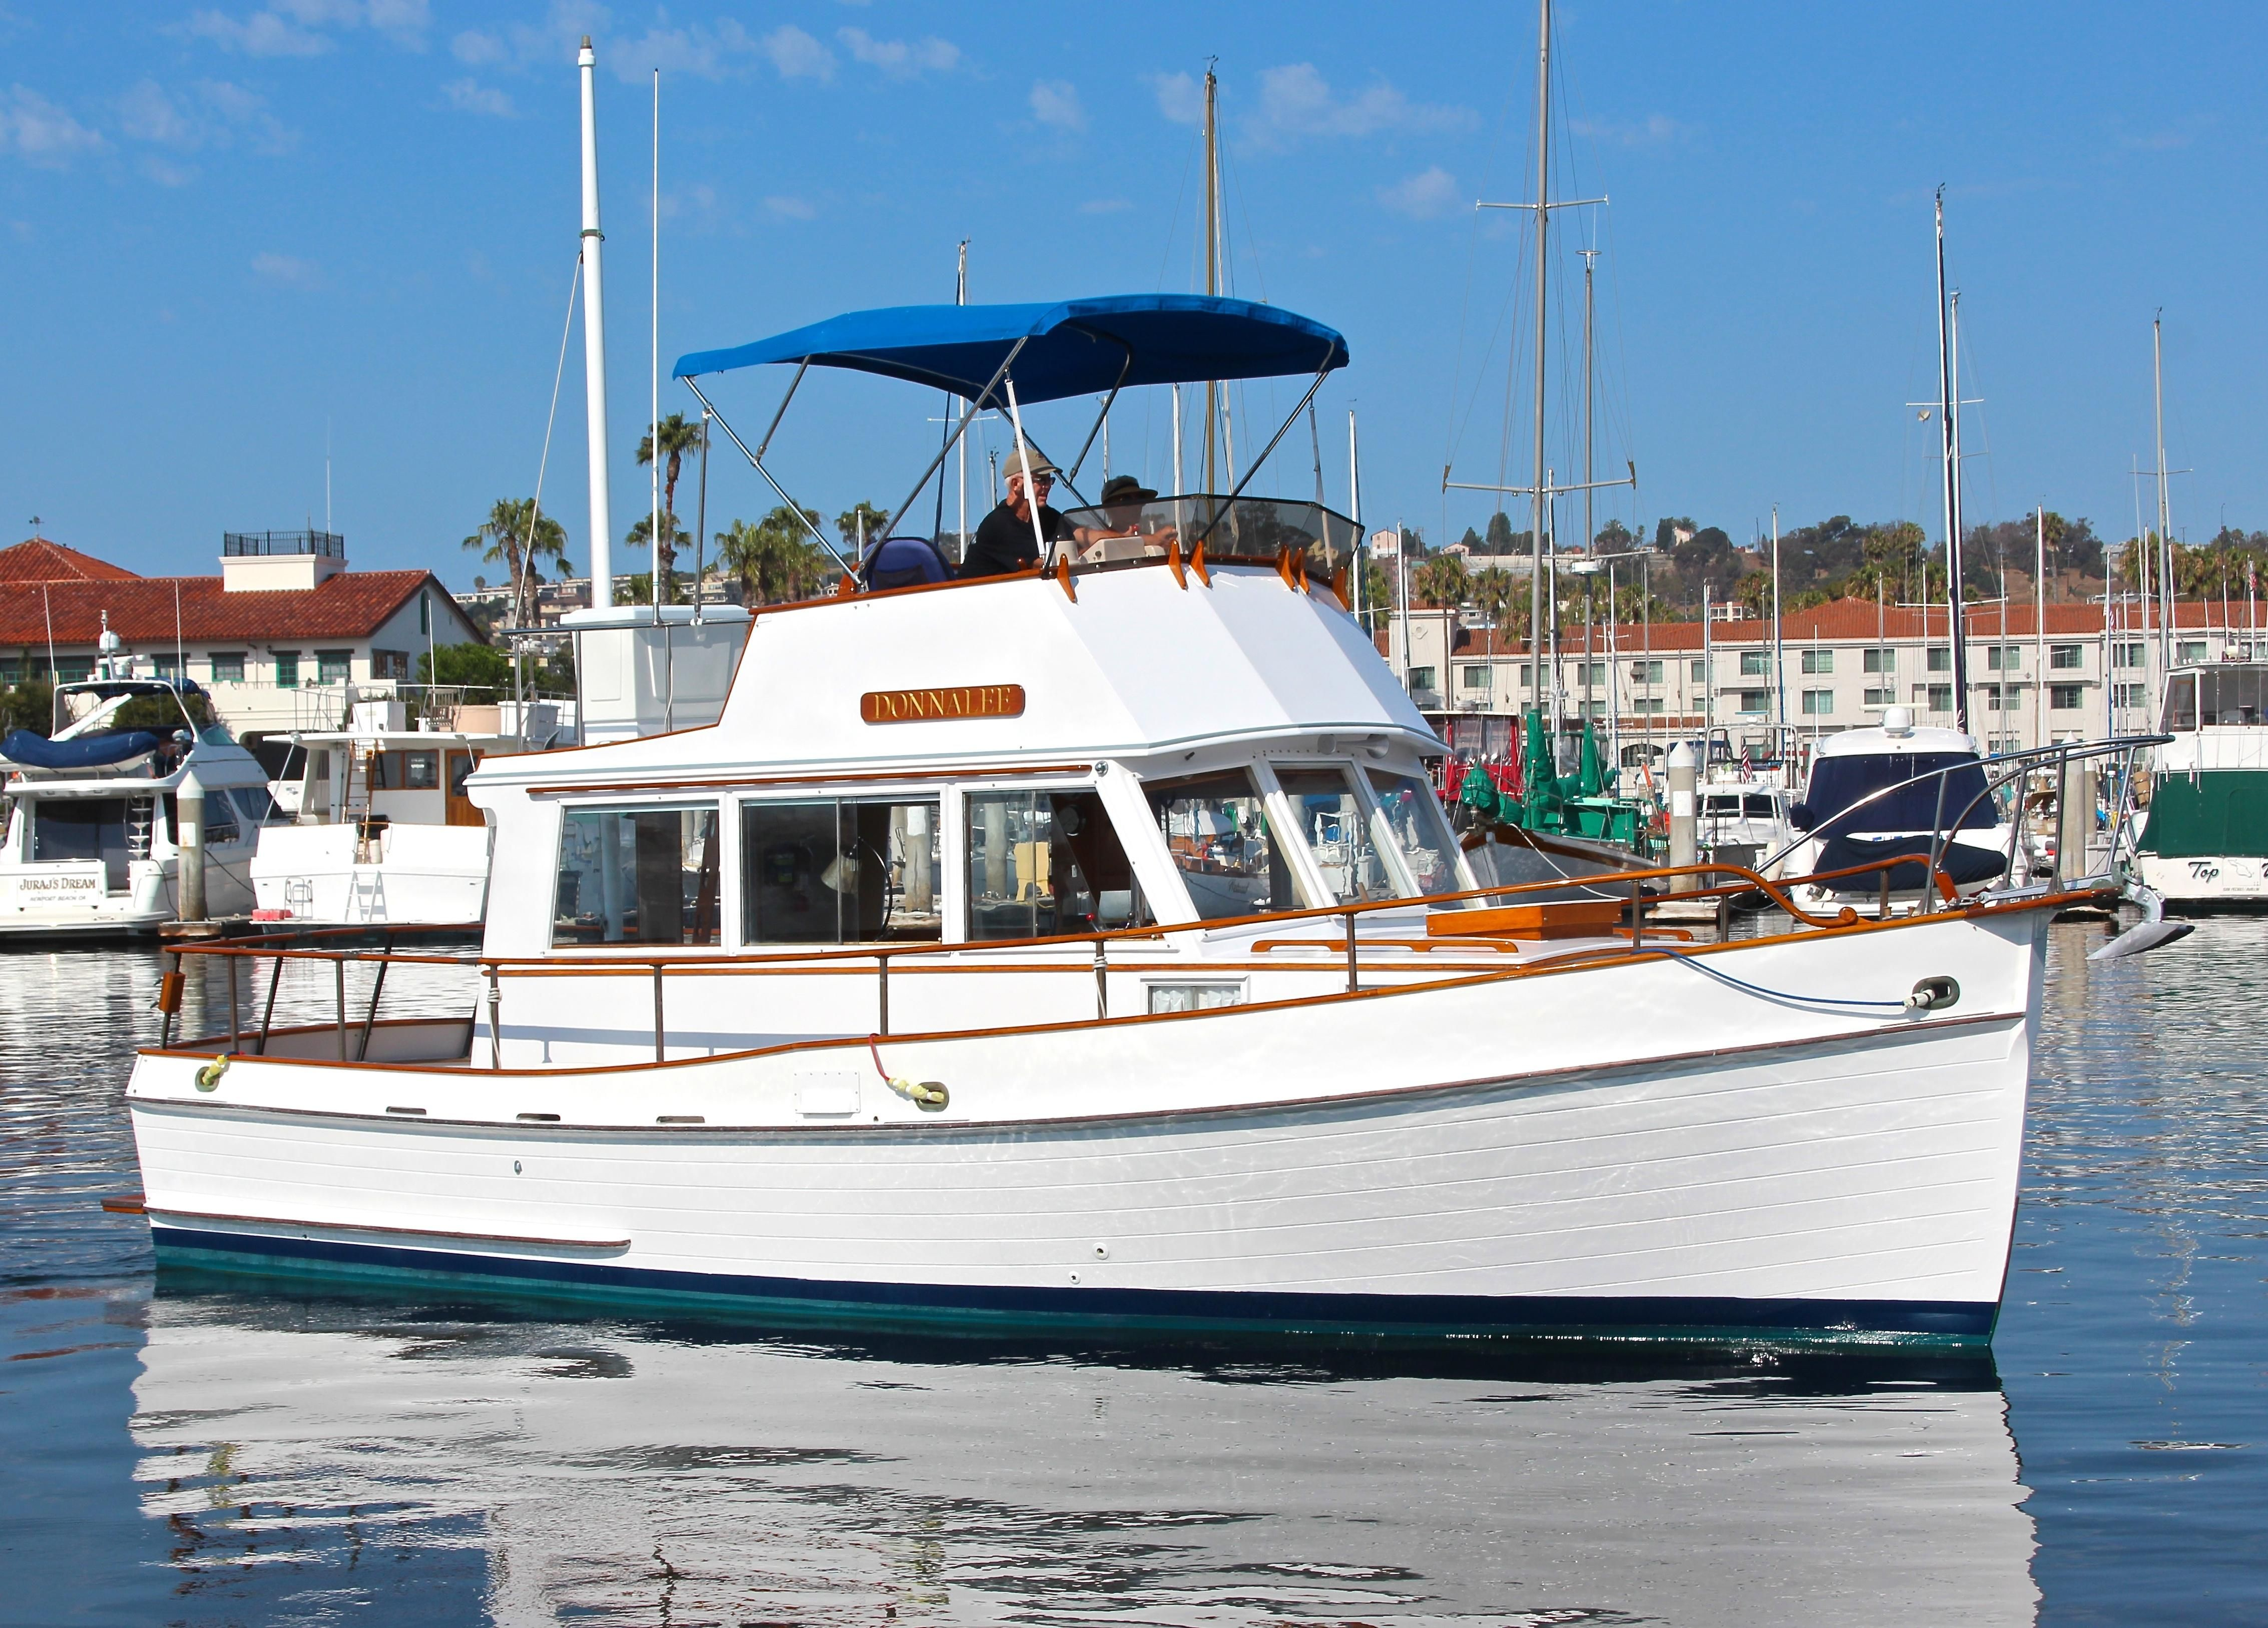 1972 grand banks 32 sedan power boat for sale www for Grand banks motor yachts for sale